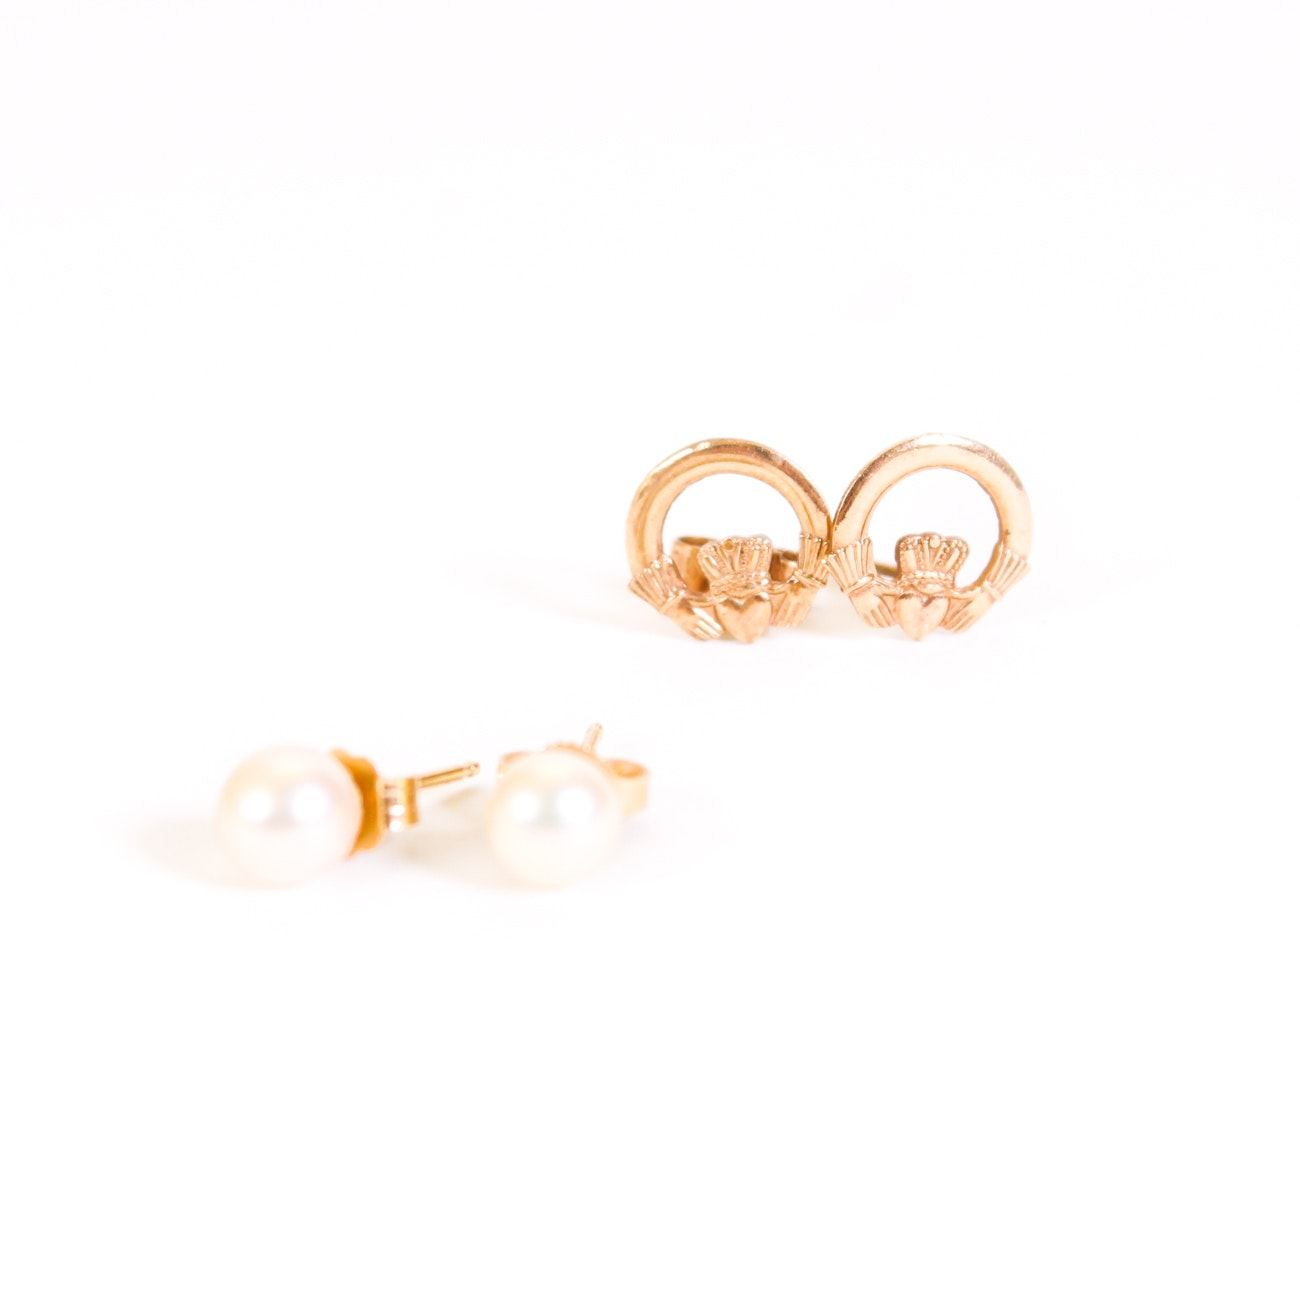 Pairing of Yellow Gold Earrings